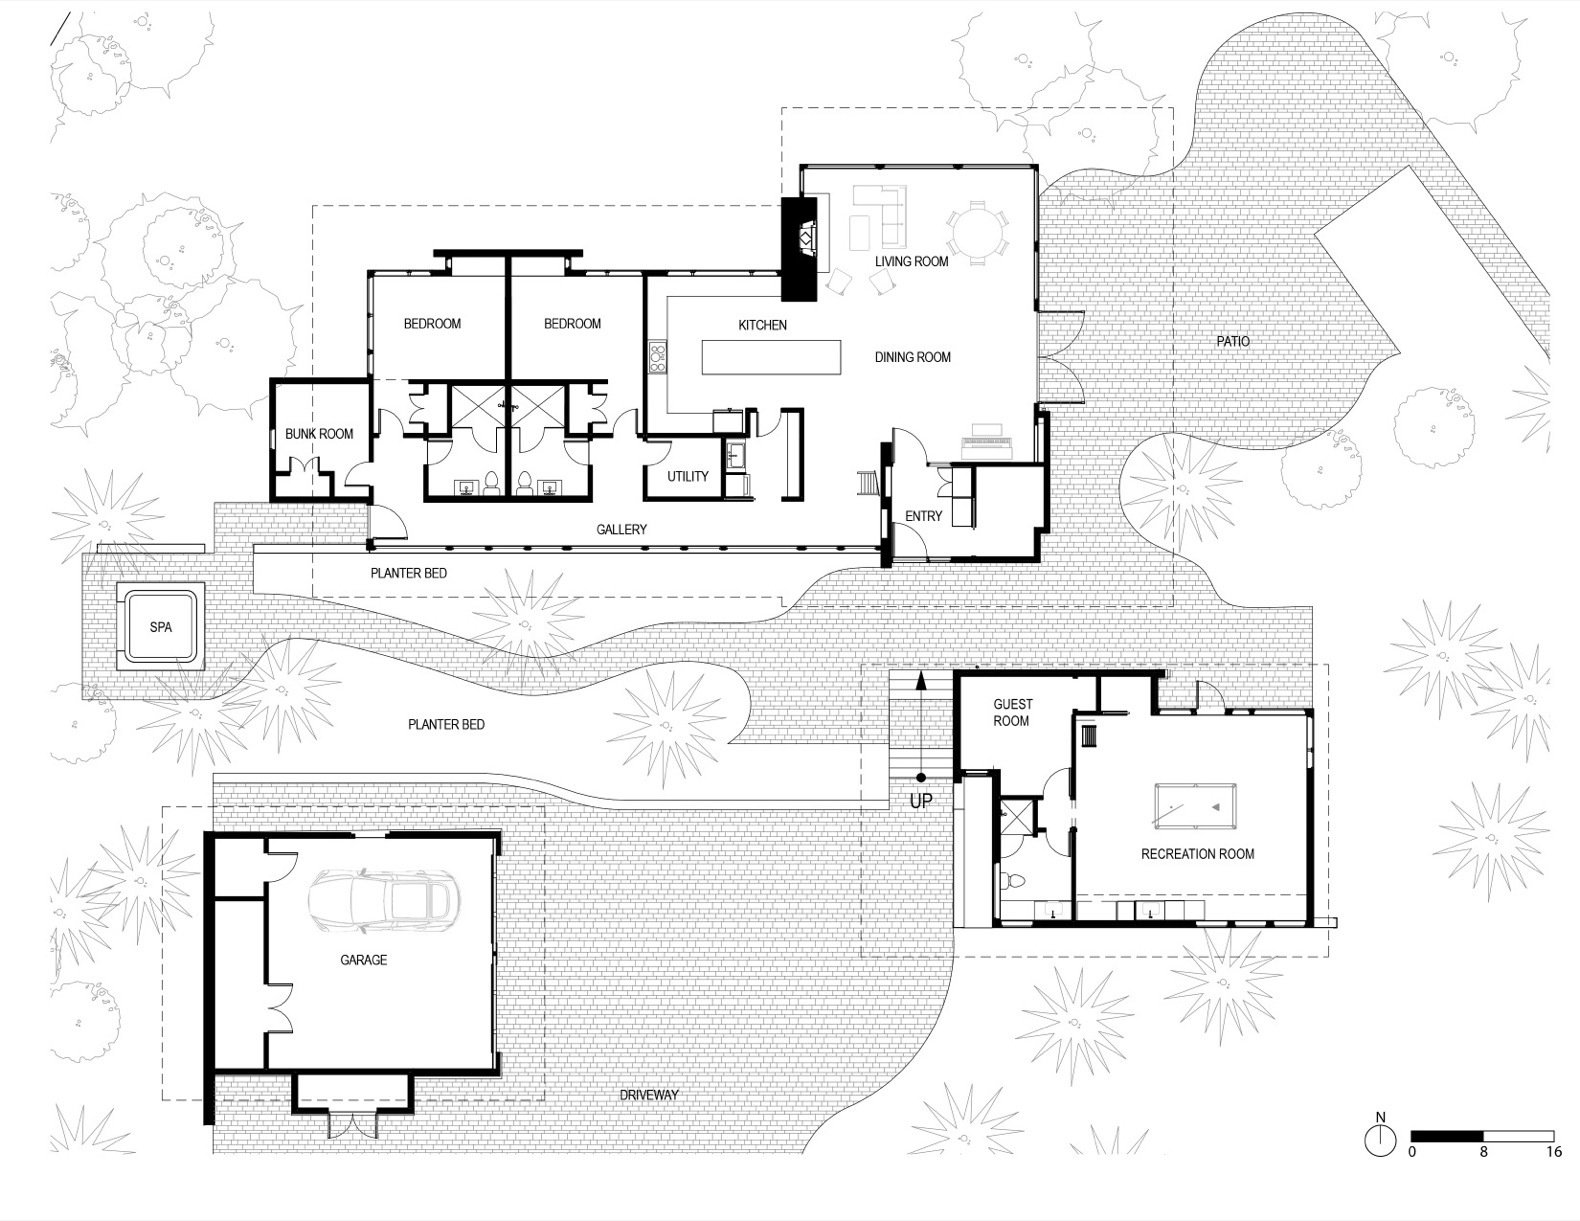 Tumble Creek Cabin Plan    Photo 12 of 12 in A Net-Zero Home Shrugs Off Winter With Solar-Energy Comfort